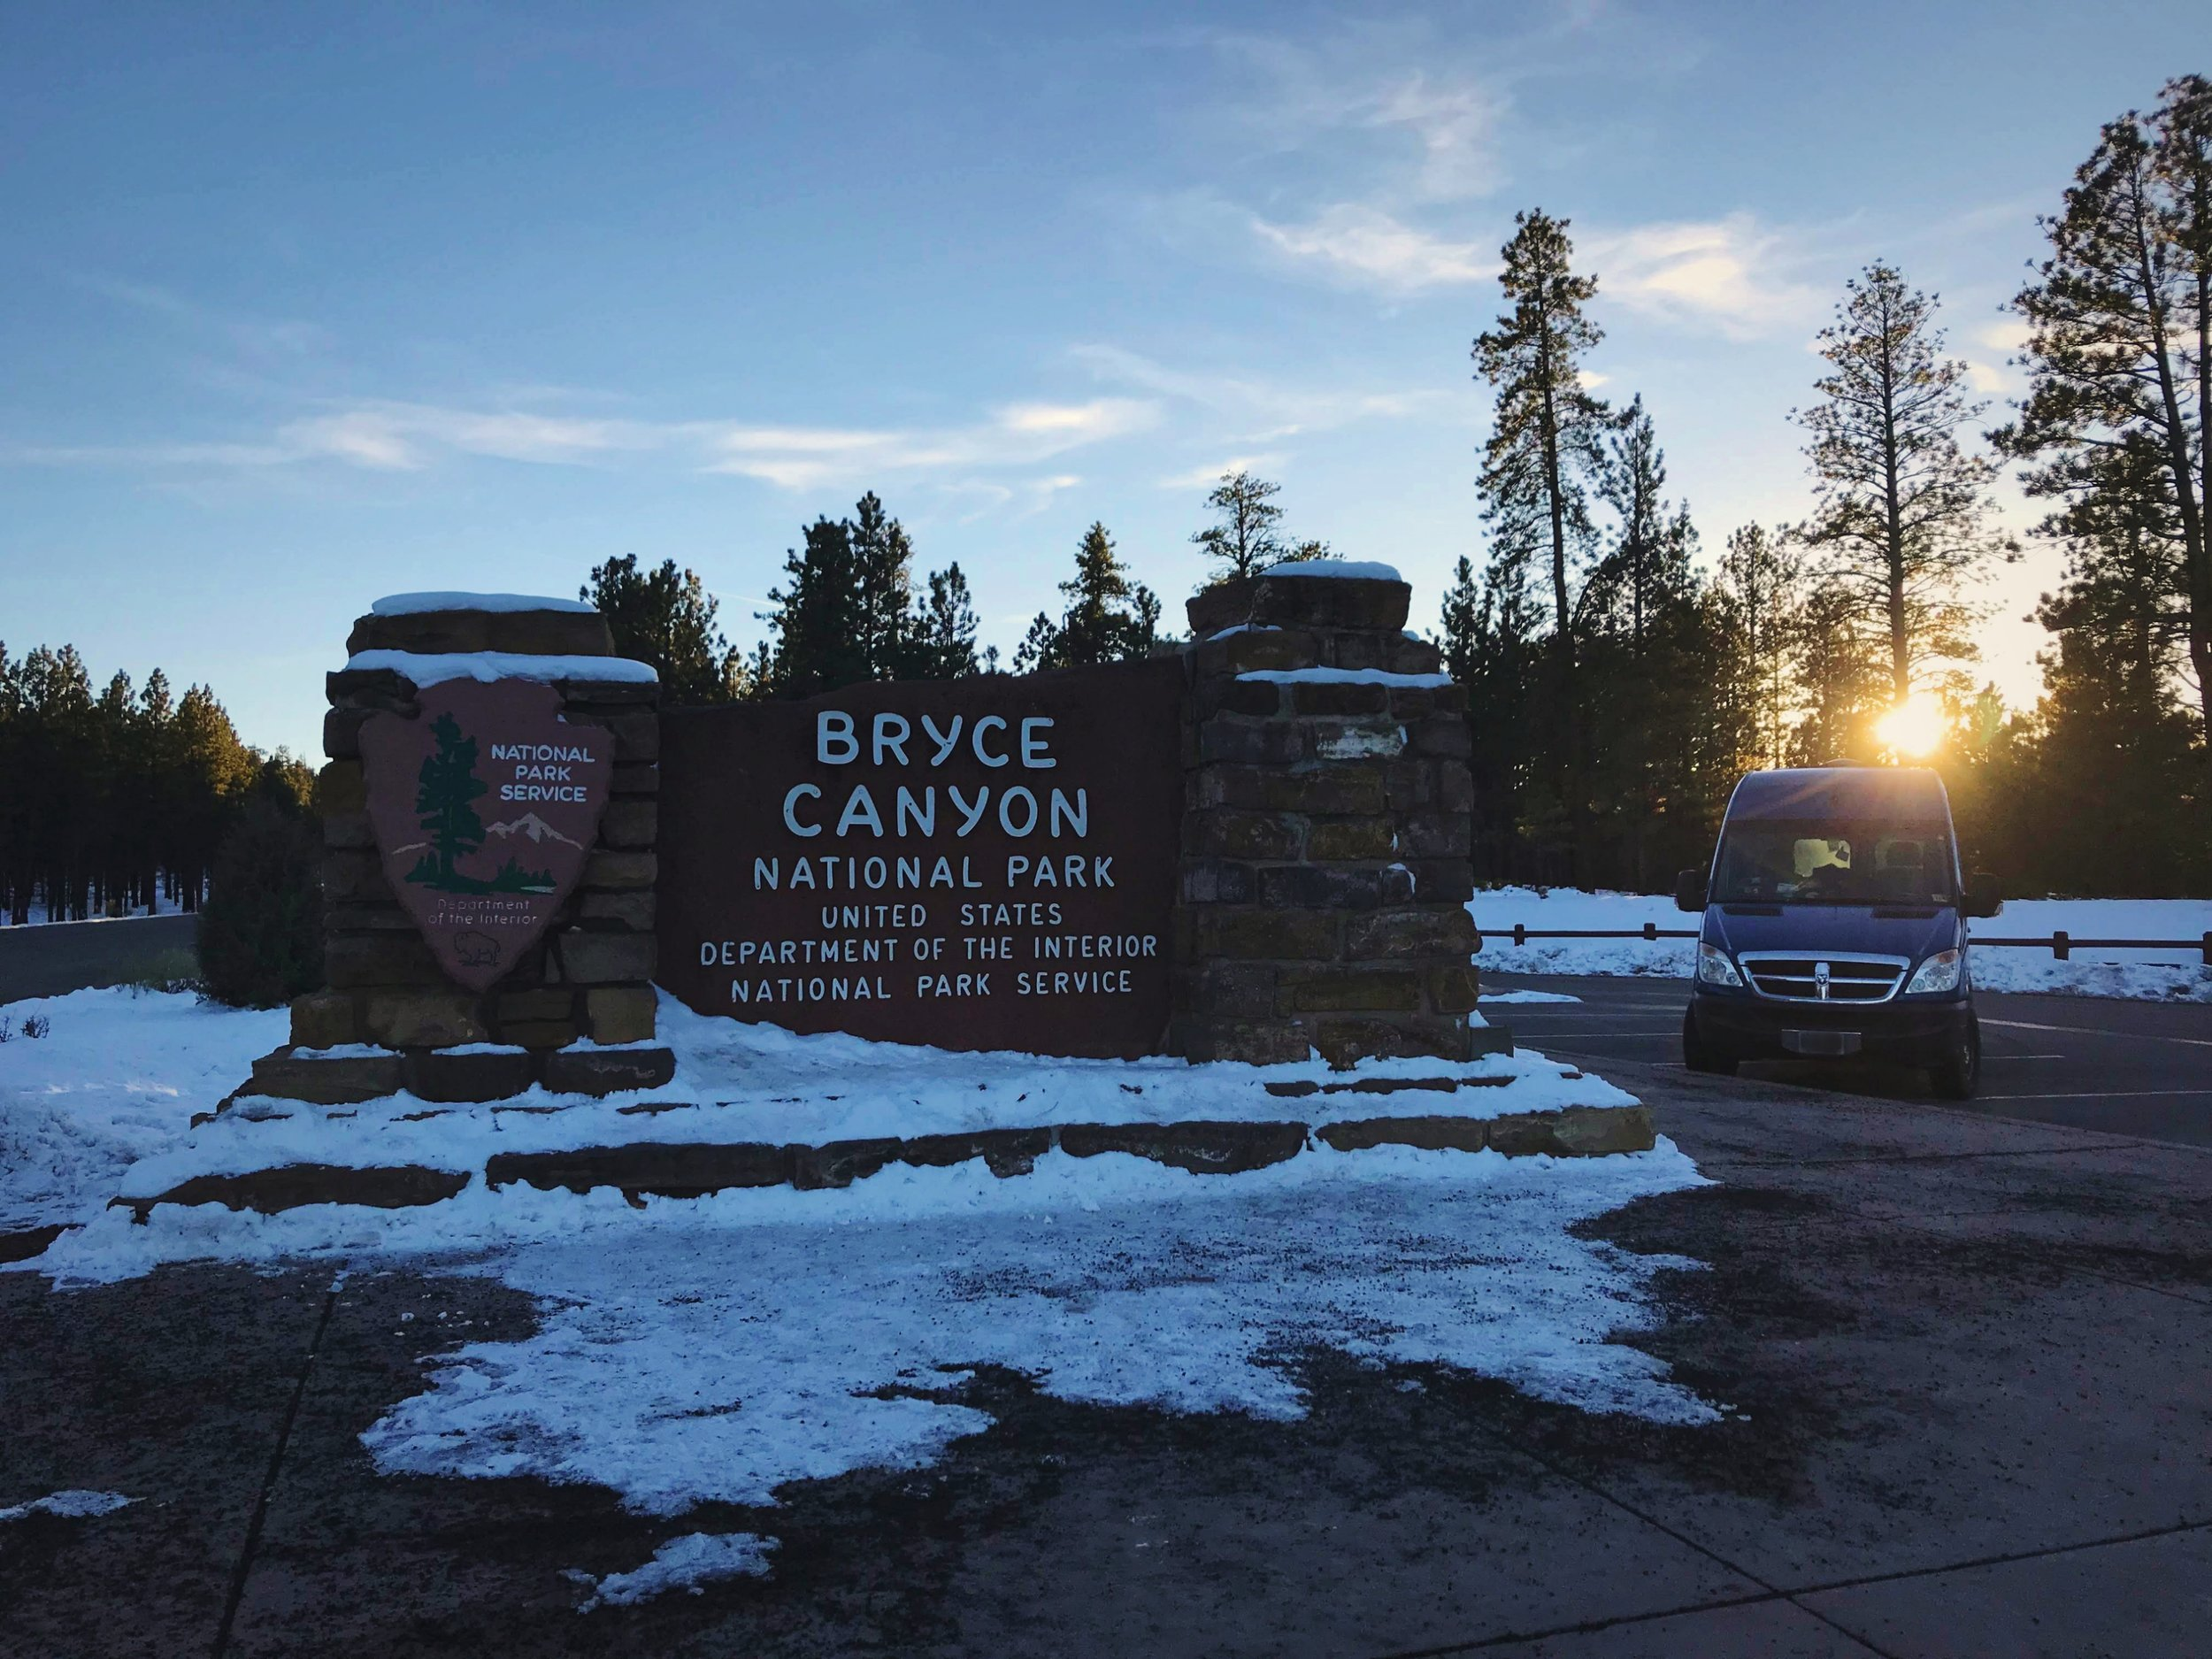 Our camper van parked by the entrance sign for Bryce Canyon National Park.